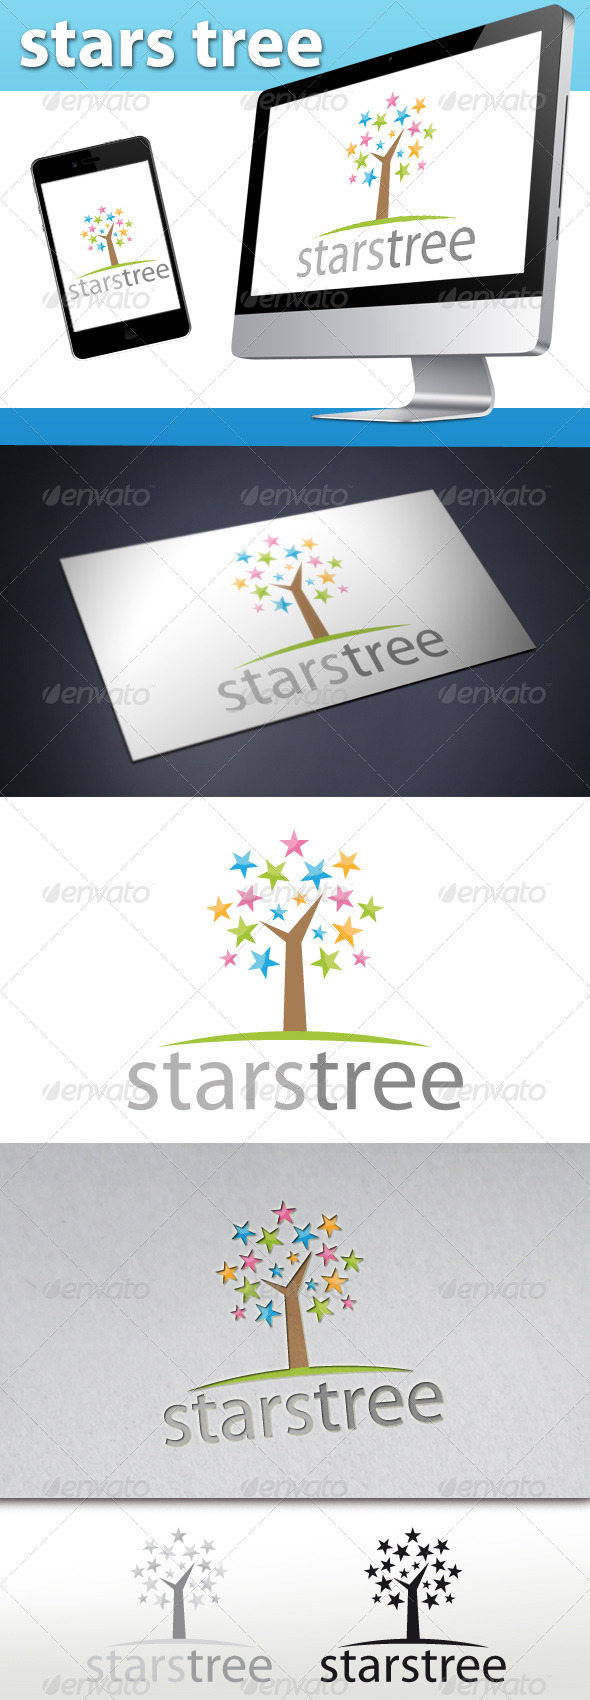 Stars Tree Logo - Objects Logo Templates